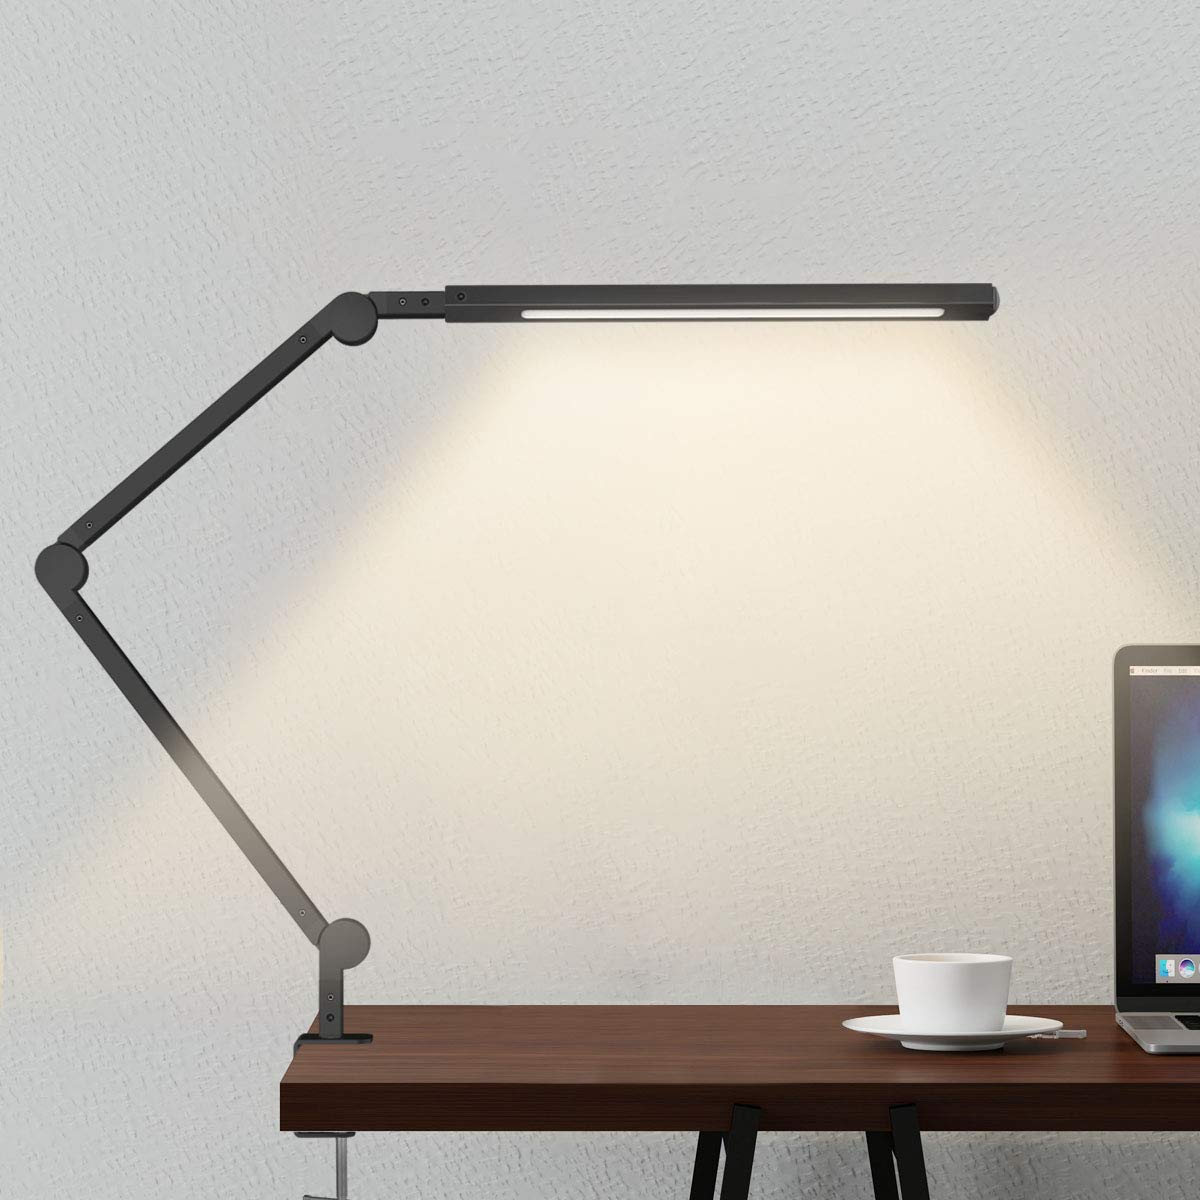 Swing Arm Lamp, LED Desk Lamp with Clamp, 9W Eye-Care Dimmable Light, Timer, Memory, 6 Color Modes, JolyJoy Modern Architect Table Lamp for Task Study Reading Working/Home Dorm Office (Black)